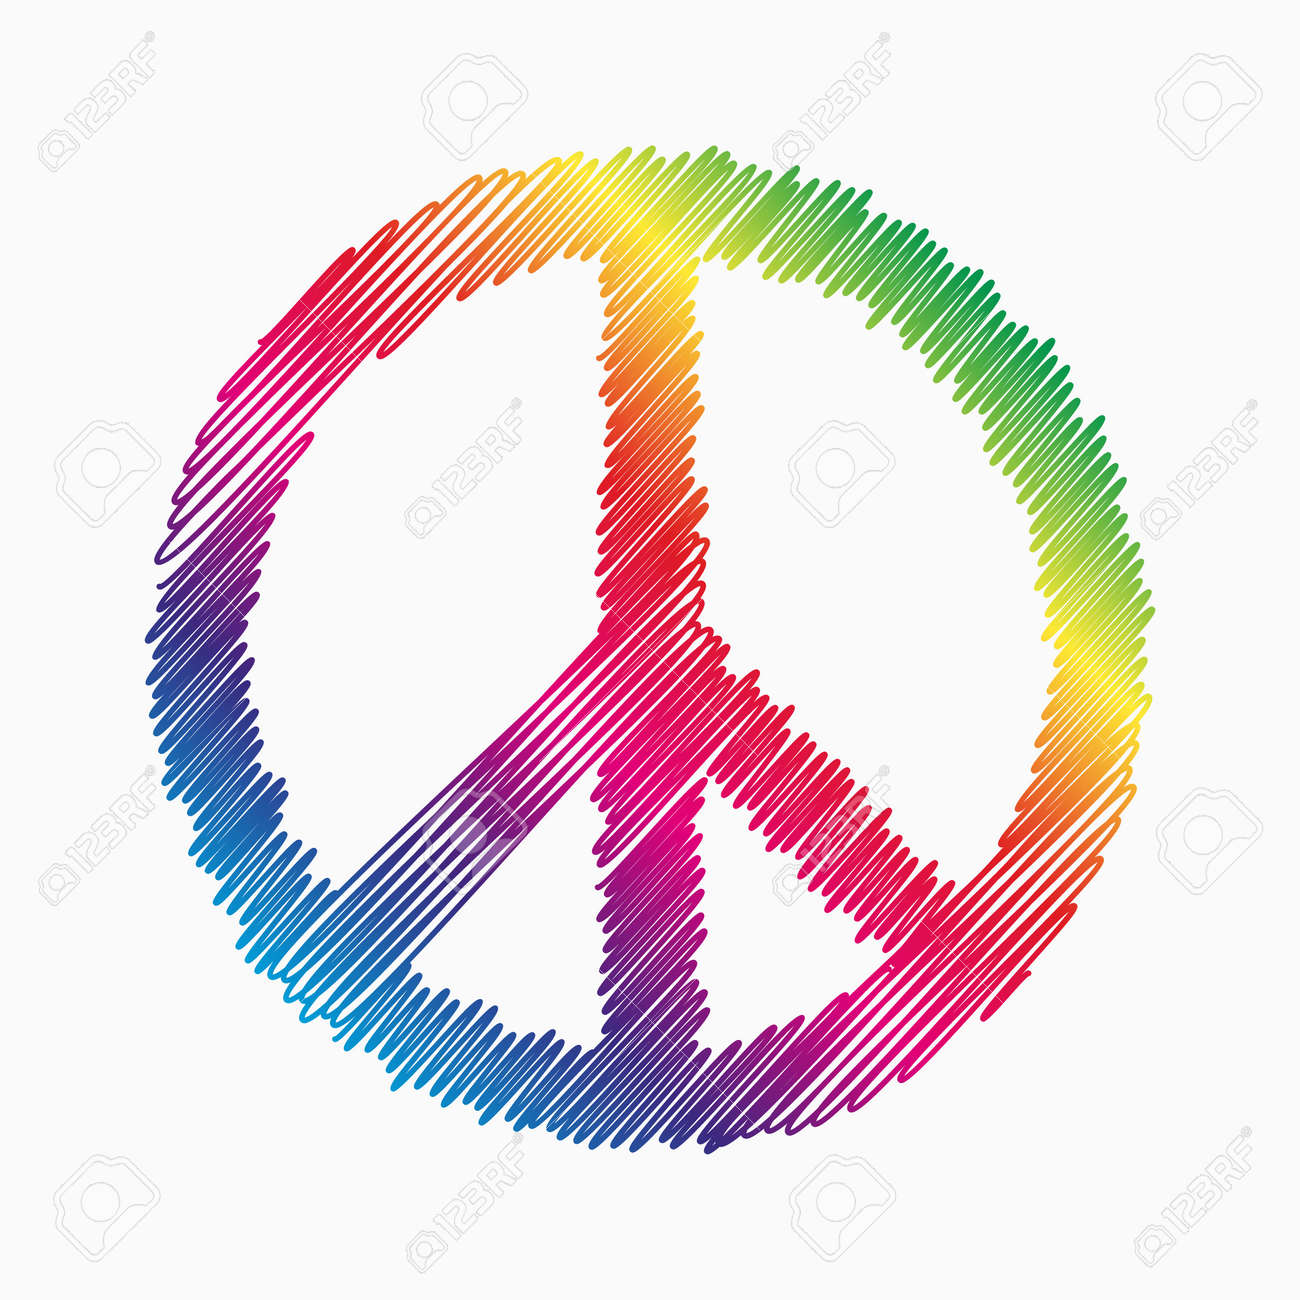 Doodle Peace symbol with rainbow fill - 46527502